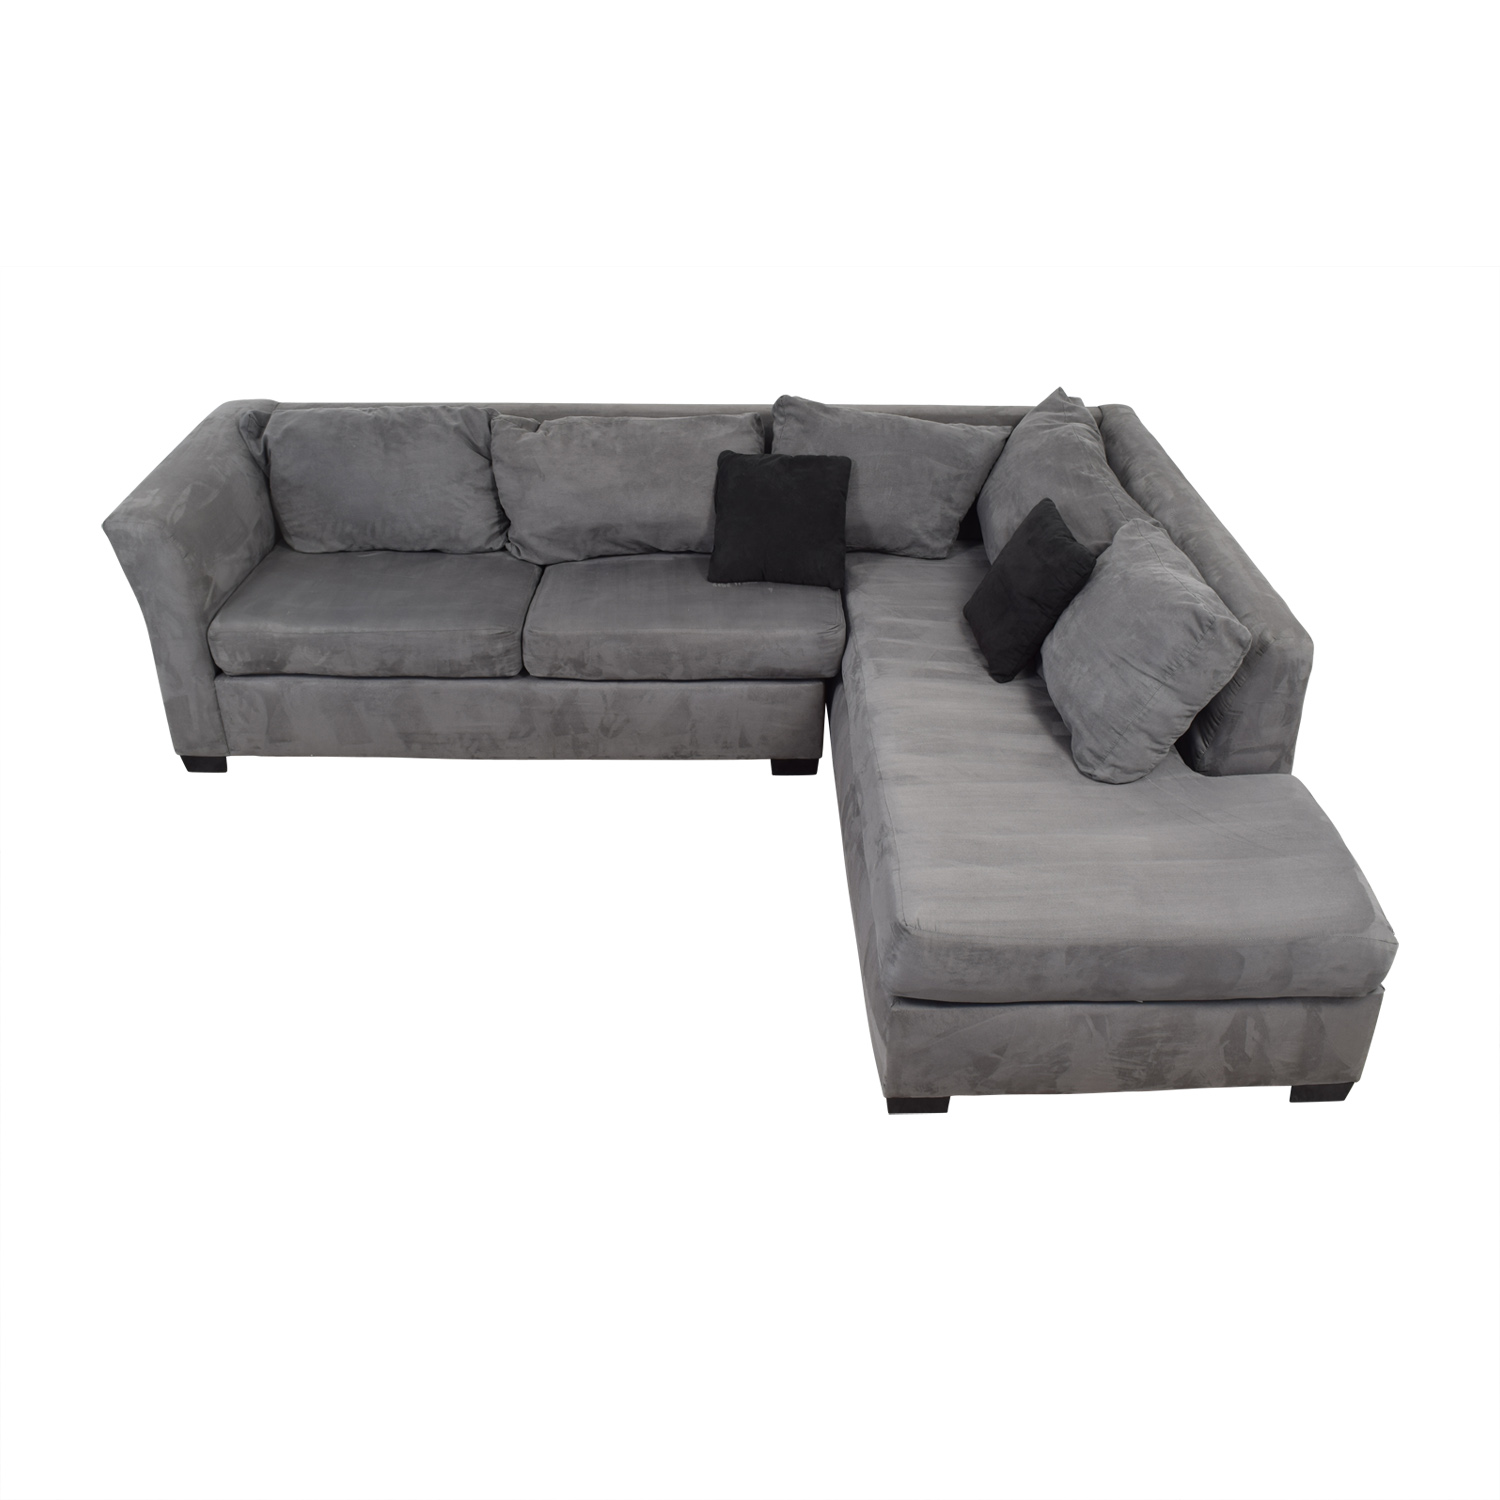 Custom Gray Microfiber L-Shaped Sectional sale